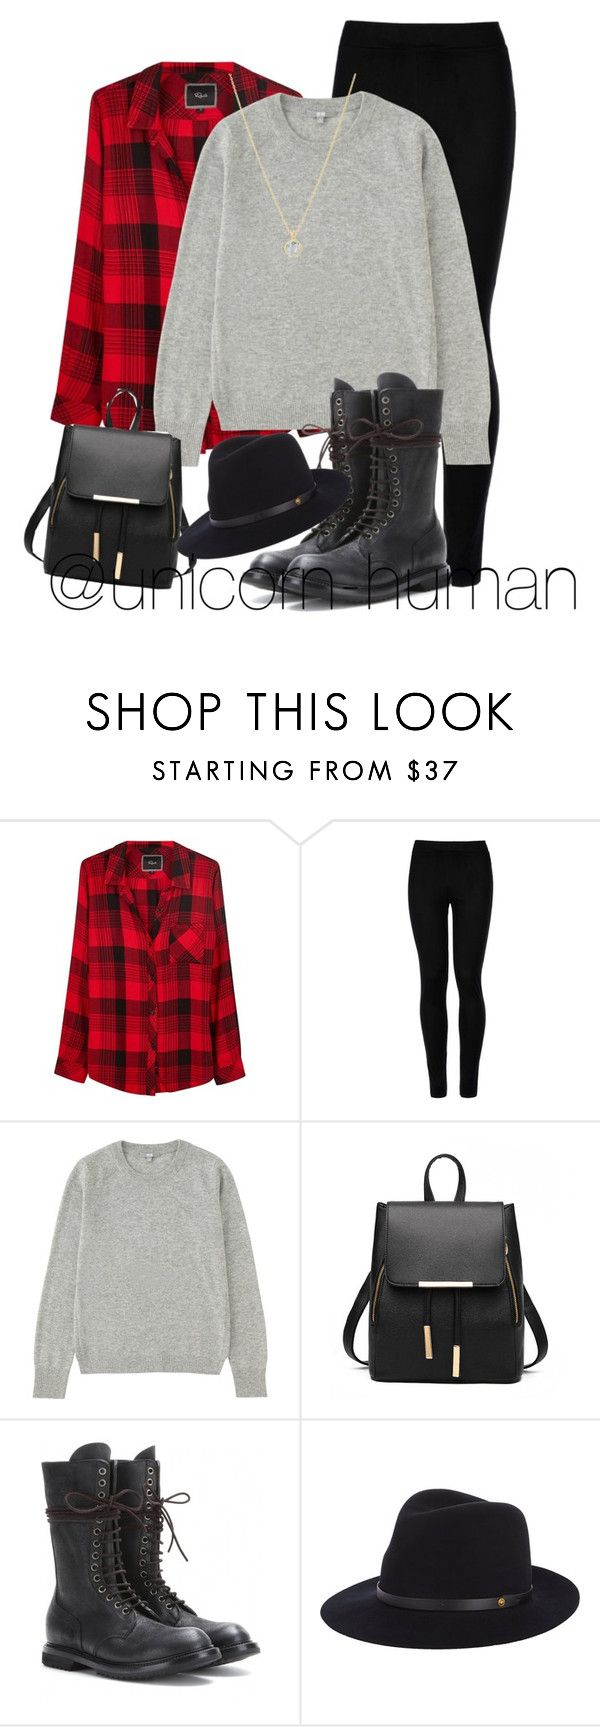 """Untitled #1701"" by unicorn-human ❤ liked on Polyvore featuring Rails, Wolford, Uniqlo, Rick Owens, rag & bone and Dinny Hall"